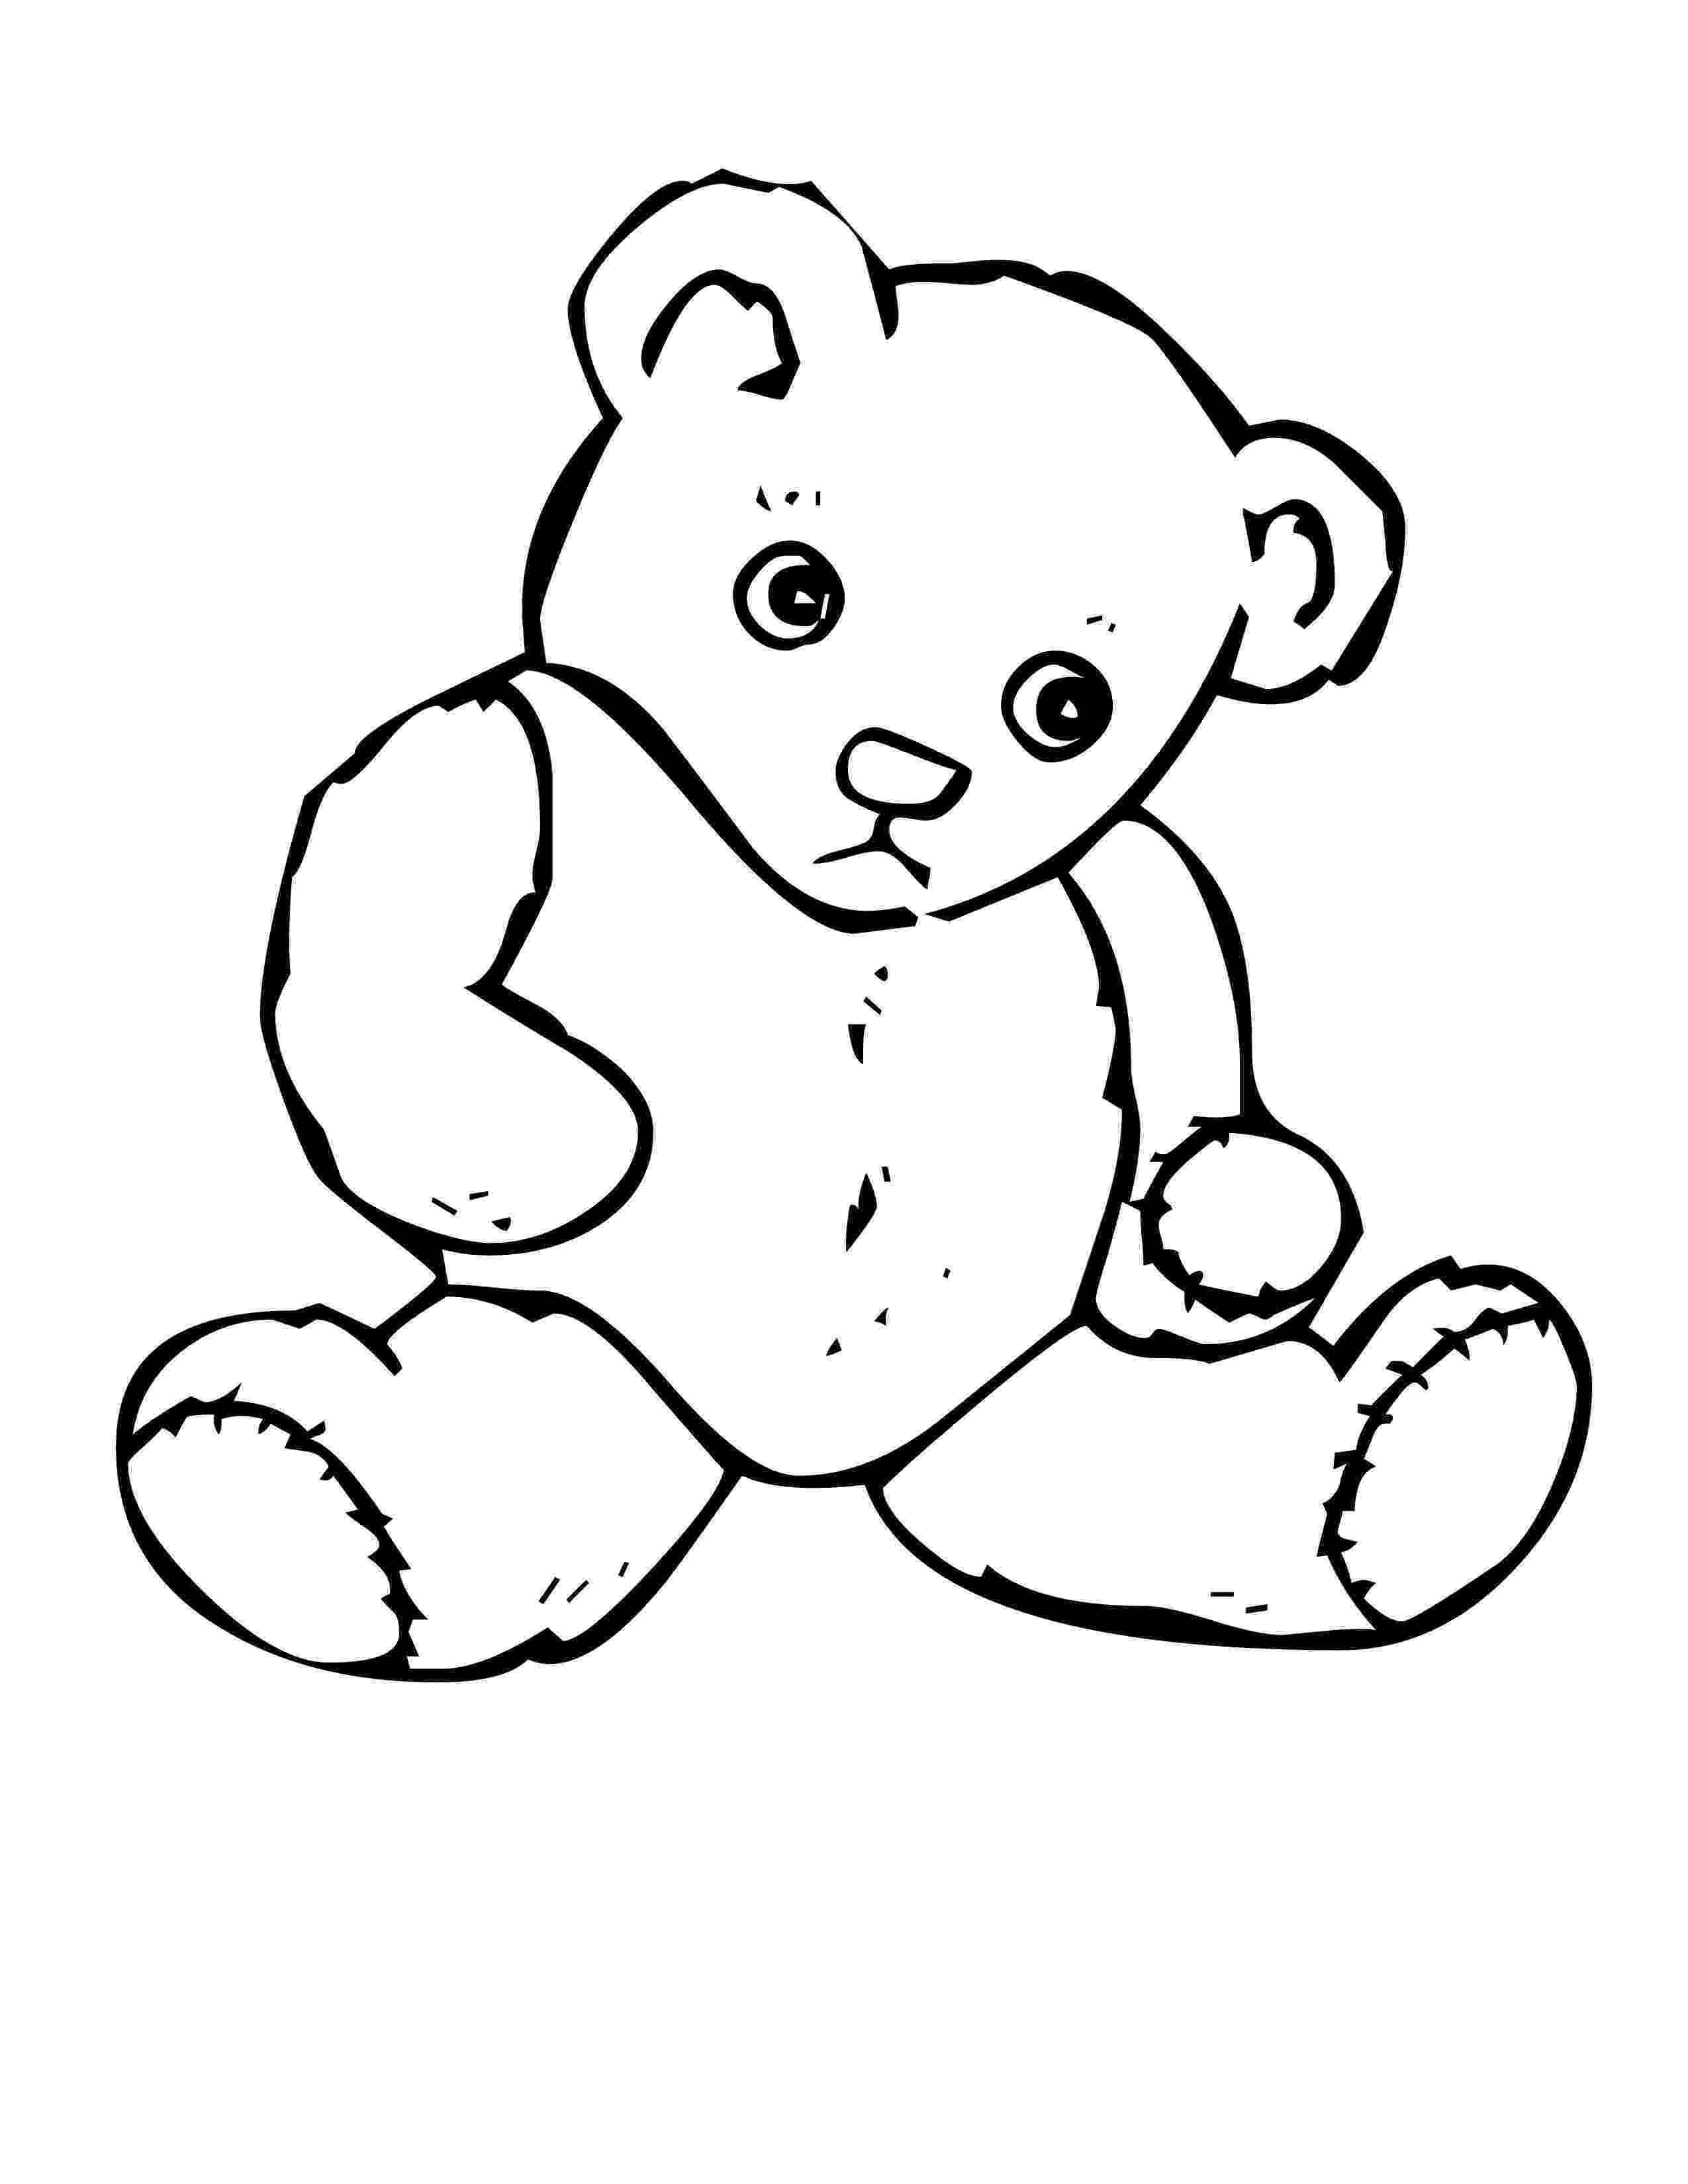 colouring pages of teddy bear free printable teddy bear coloring pages for kids teddy pages of colouring bear